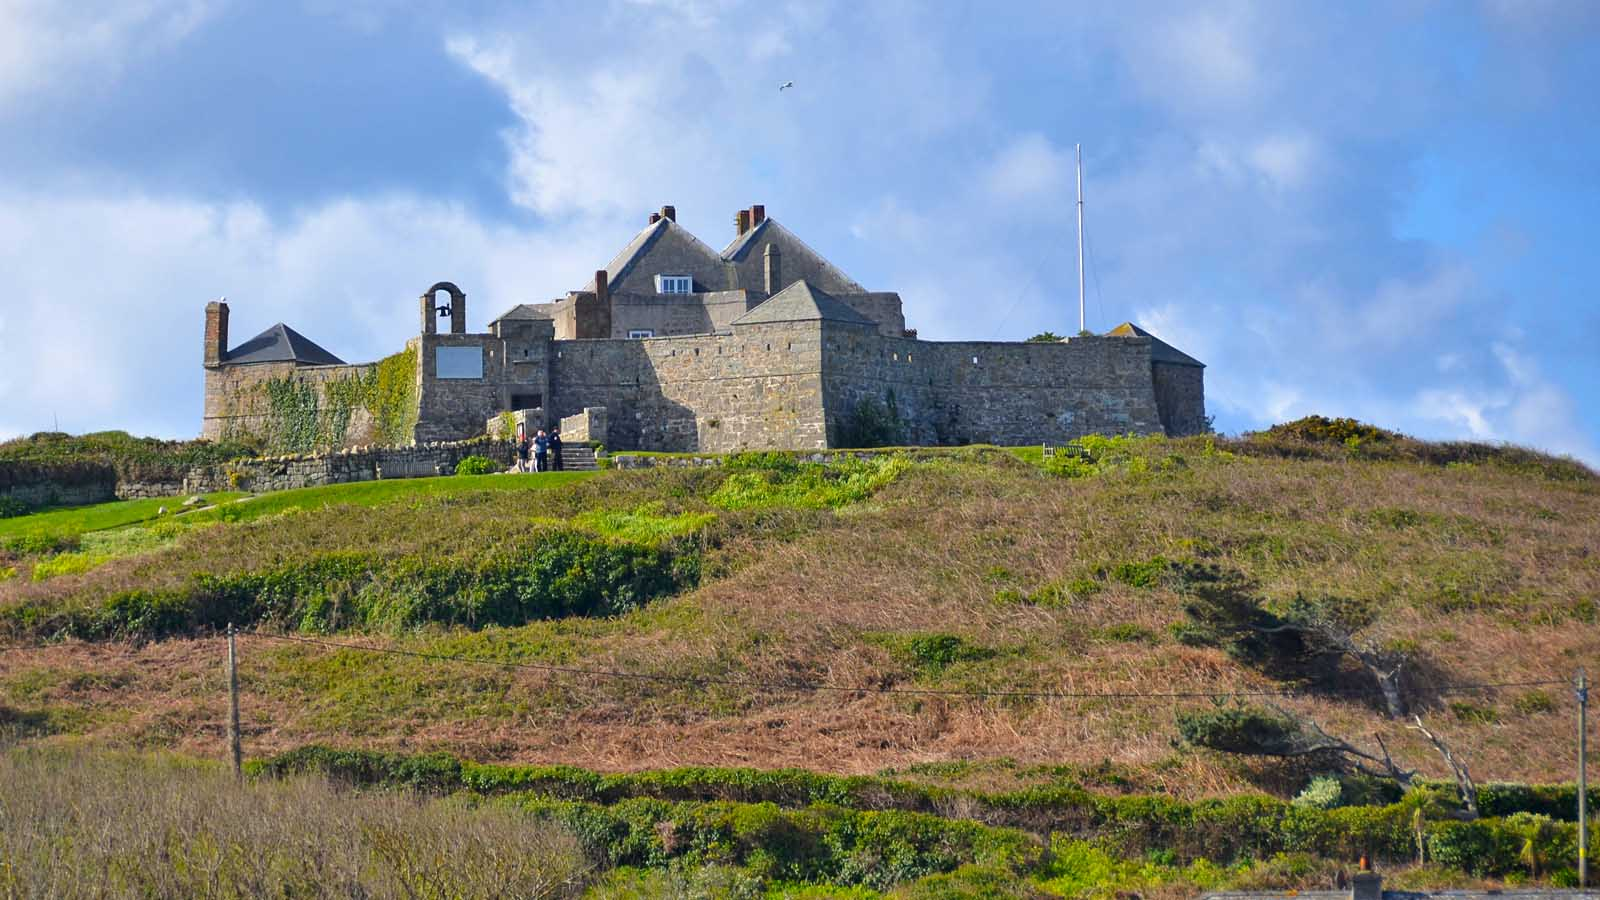 Scilly's Star Castle Receives Top Hotel Award | Scilly Today